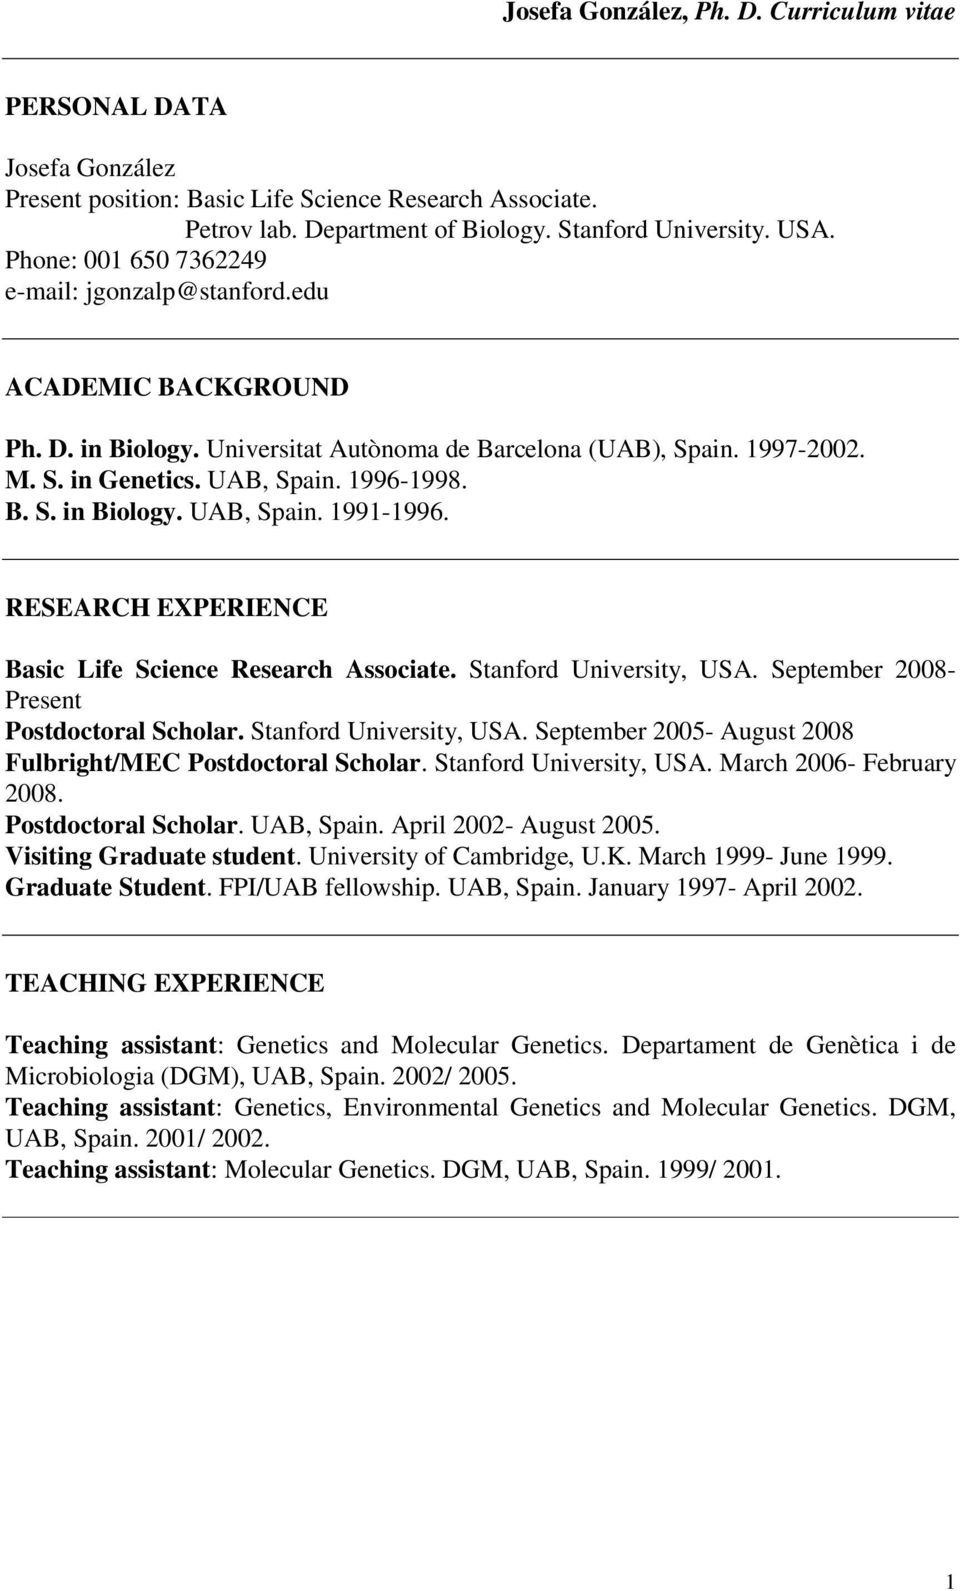 RESEARCH EXPERIENCE Basic Life Science Research Associate. Stanford University, USA. September 2008- Present Postdoctoral Scholar. Stanford University, USA. September 2005- August 2008 Fulbright/MEC Postdoctoral Scholar.